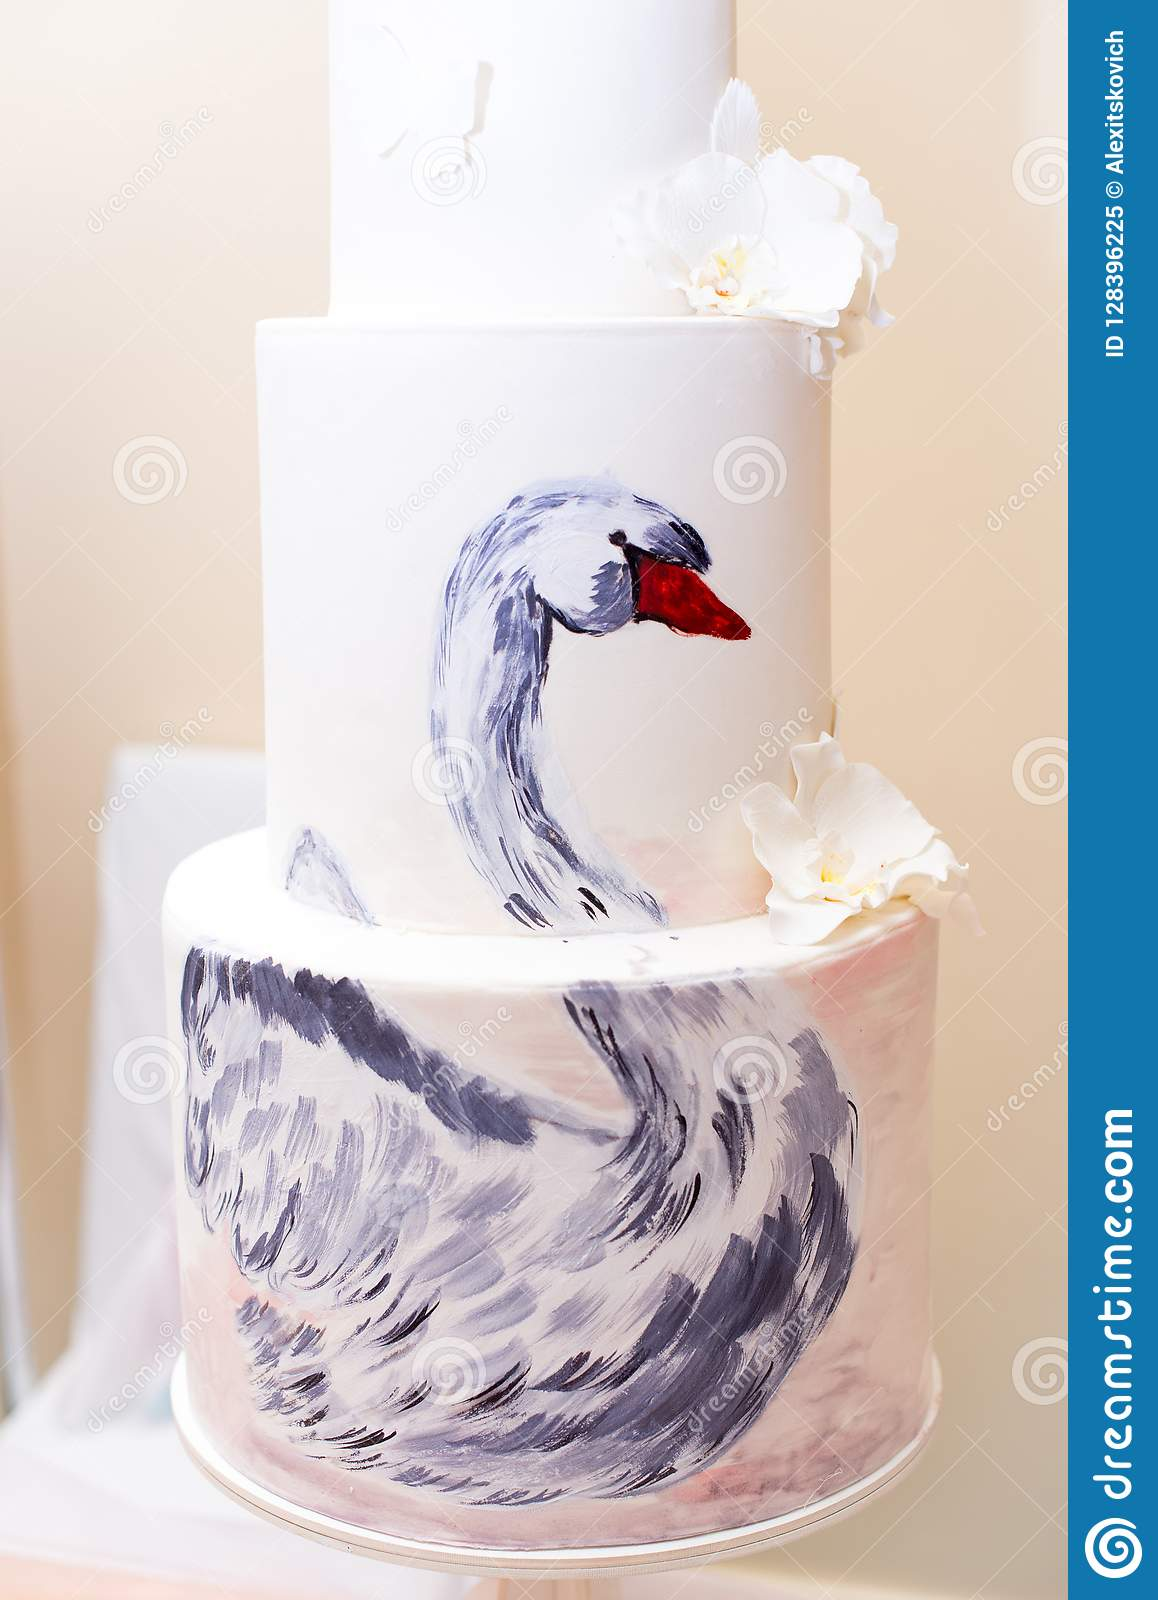 Cake with a picture Swan, with white flowers